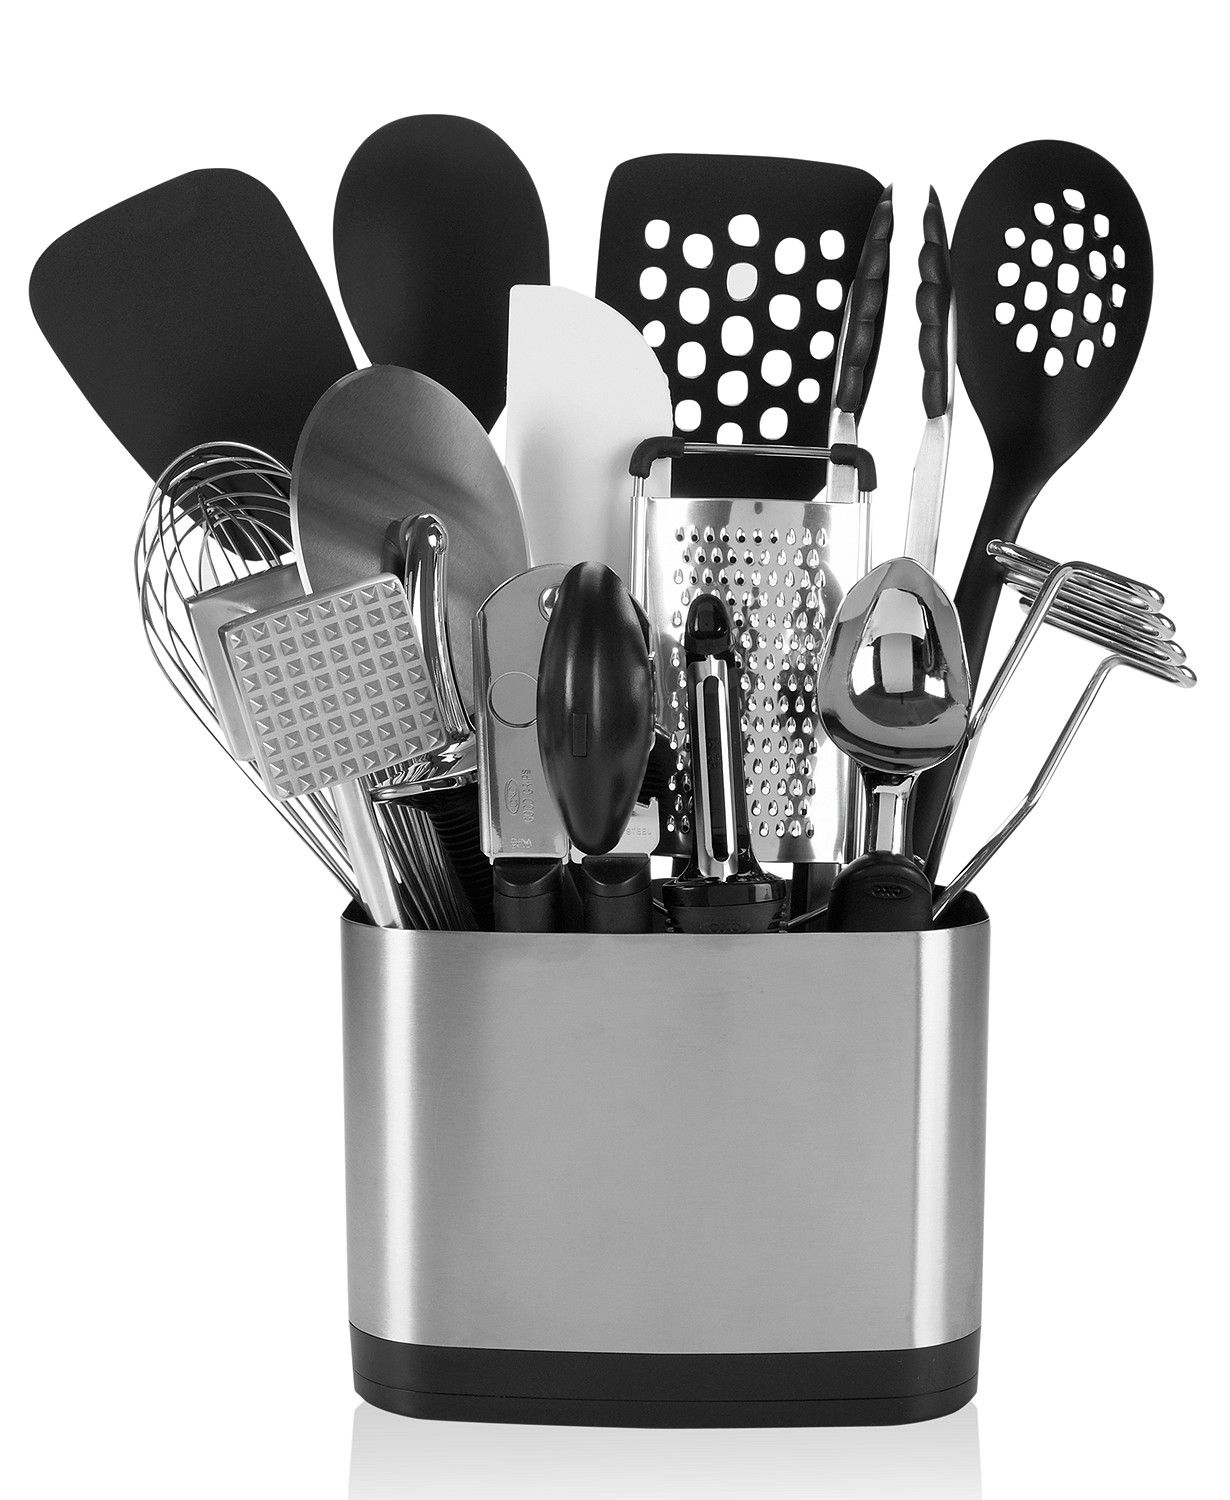 Oxo 15 Piece Kitchen Utensil Set Reviews Home Macy S Kitchen Utensil Set Utensil Set Essential Kitchen Tools